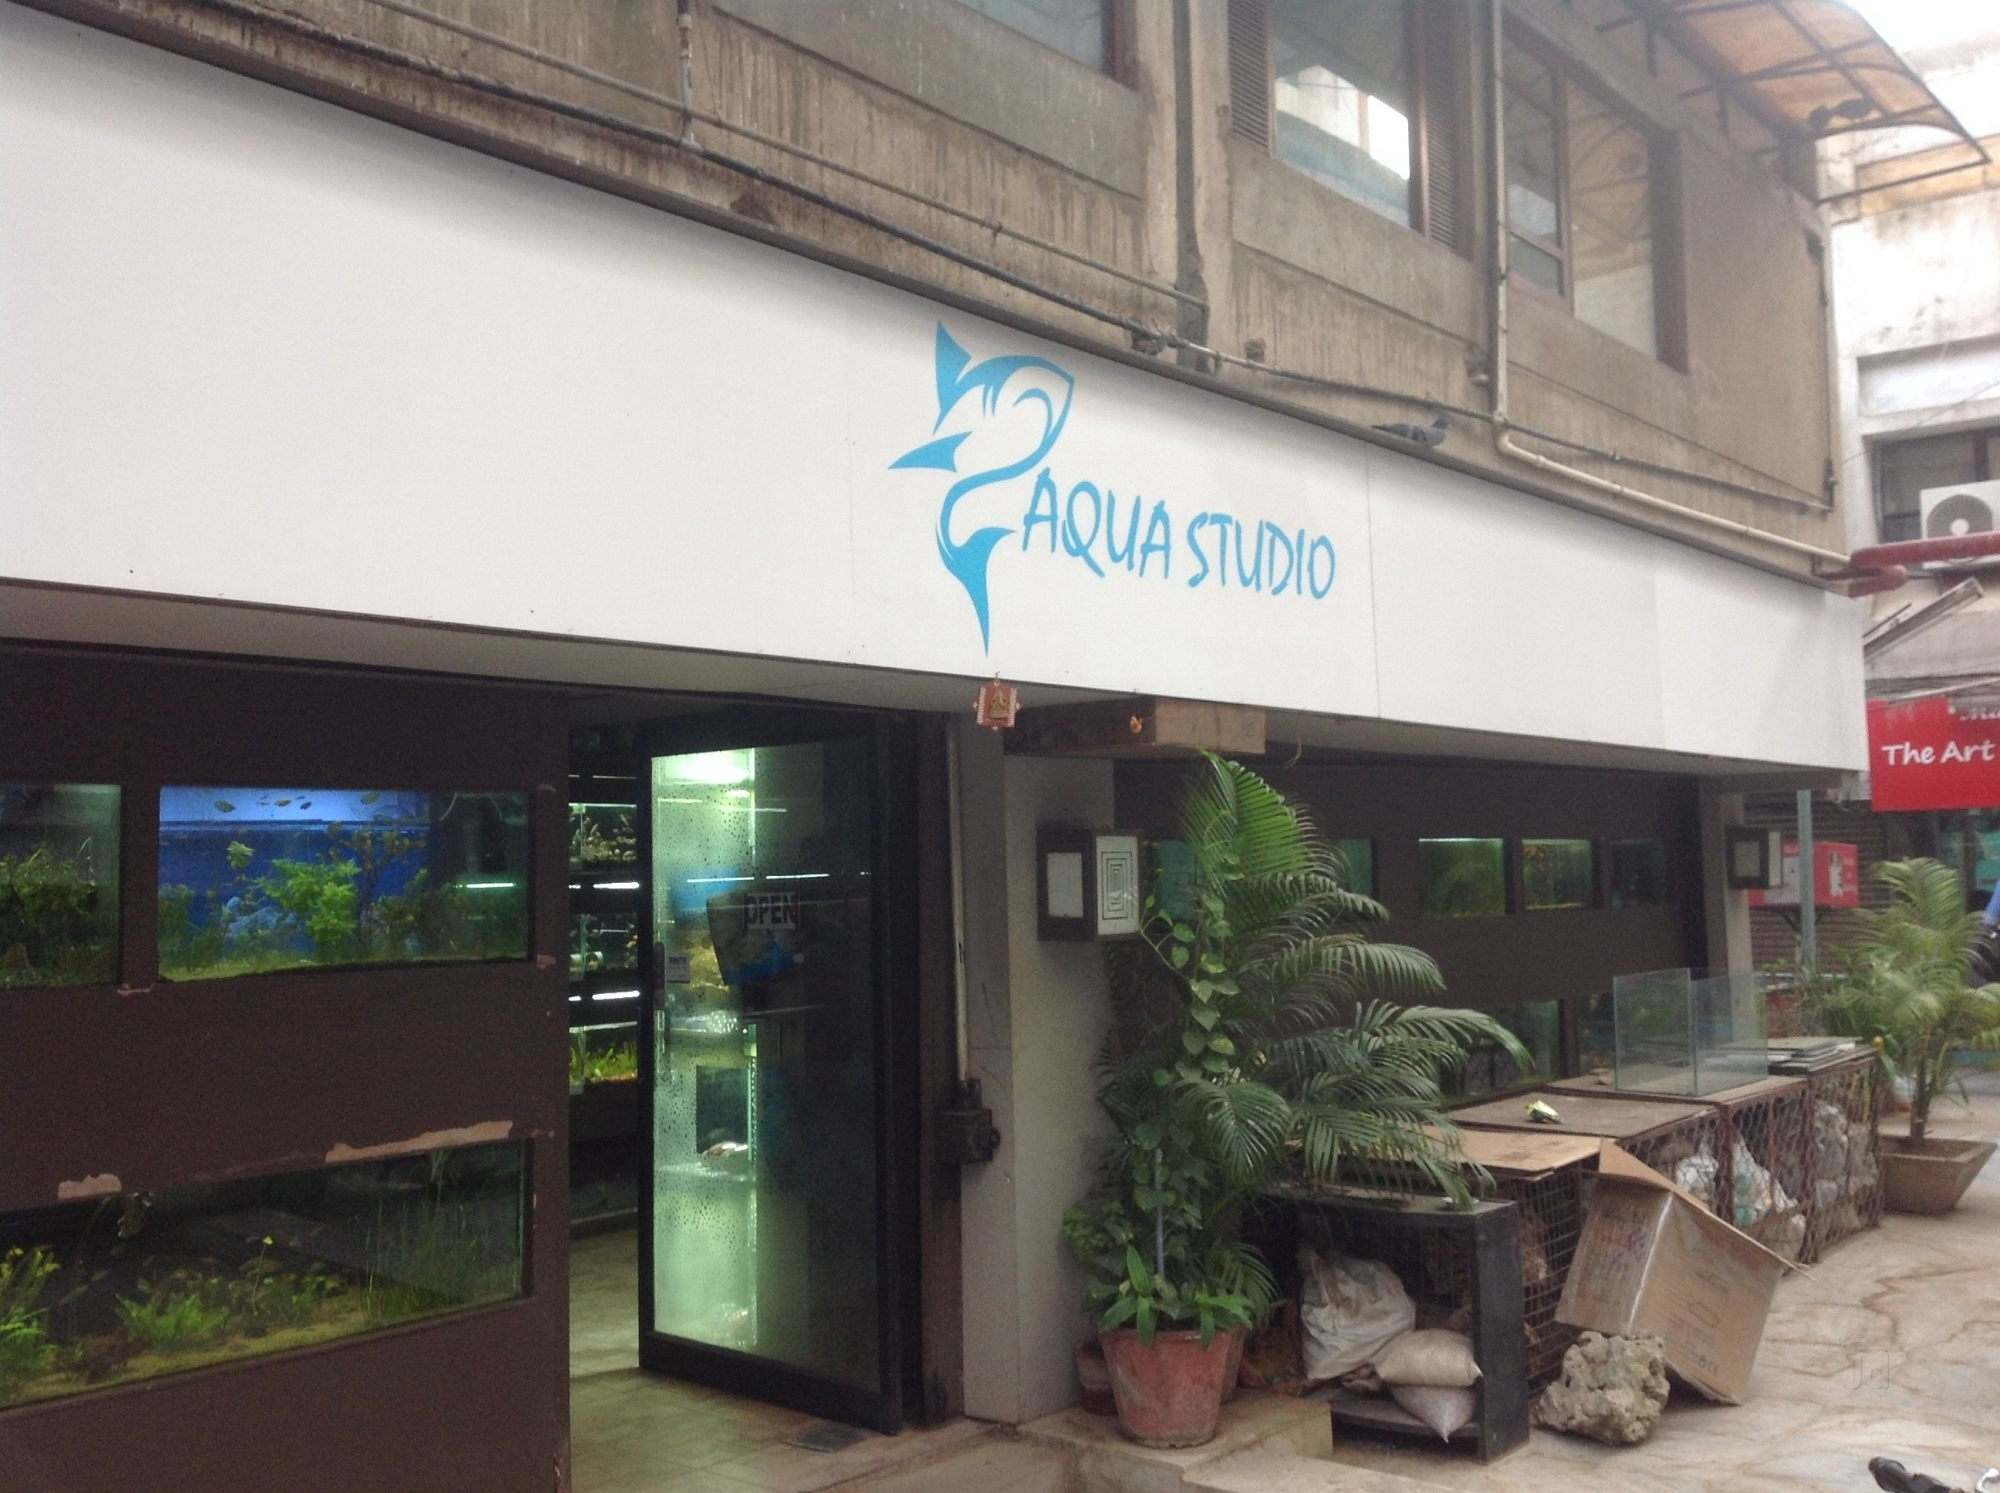 Aquastudio address